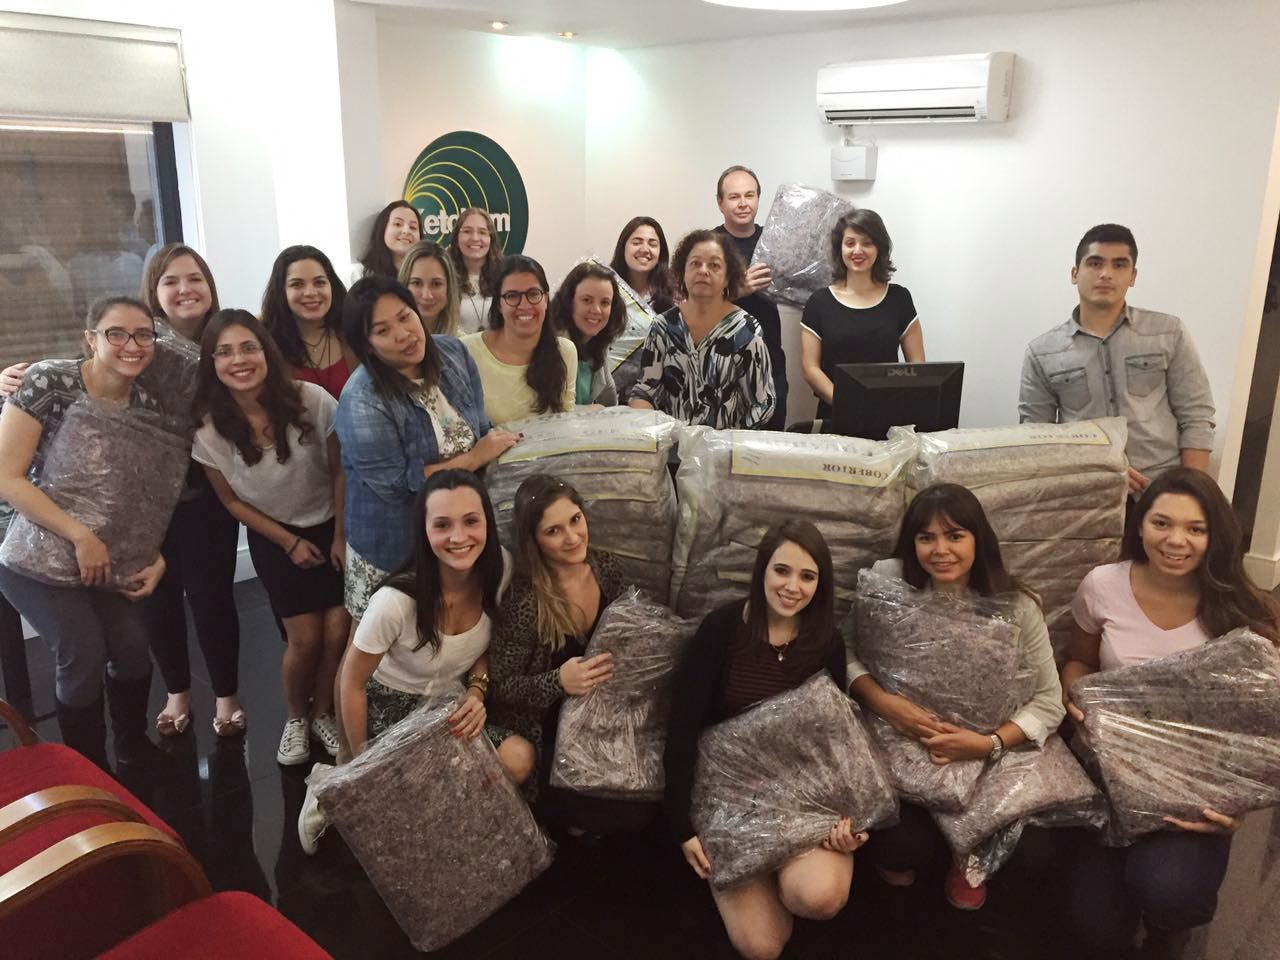 Colleagues from Brazil participated in a coat drive.